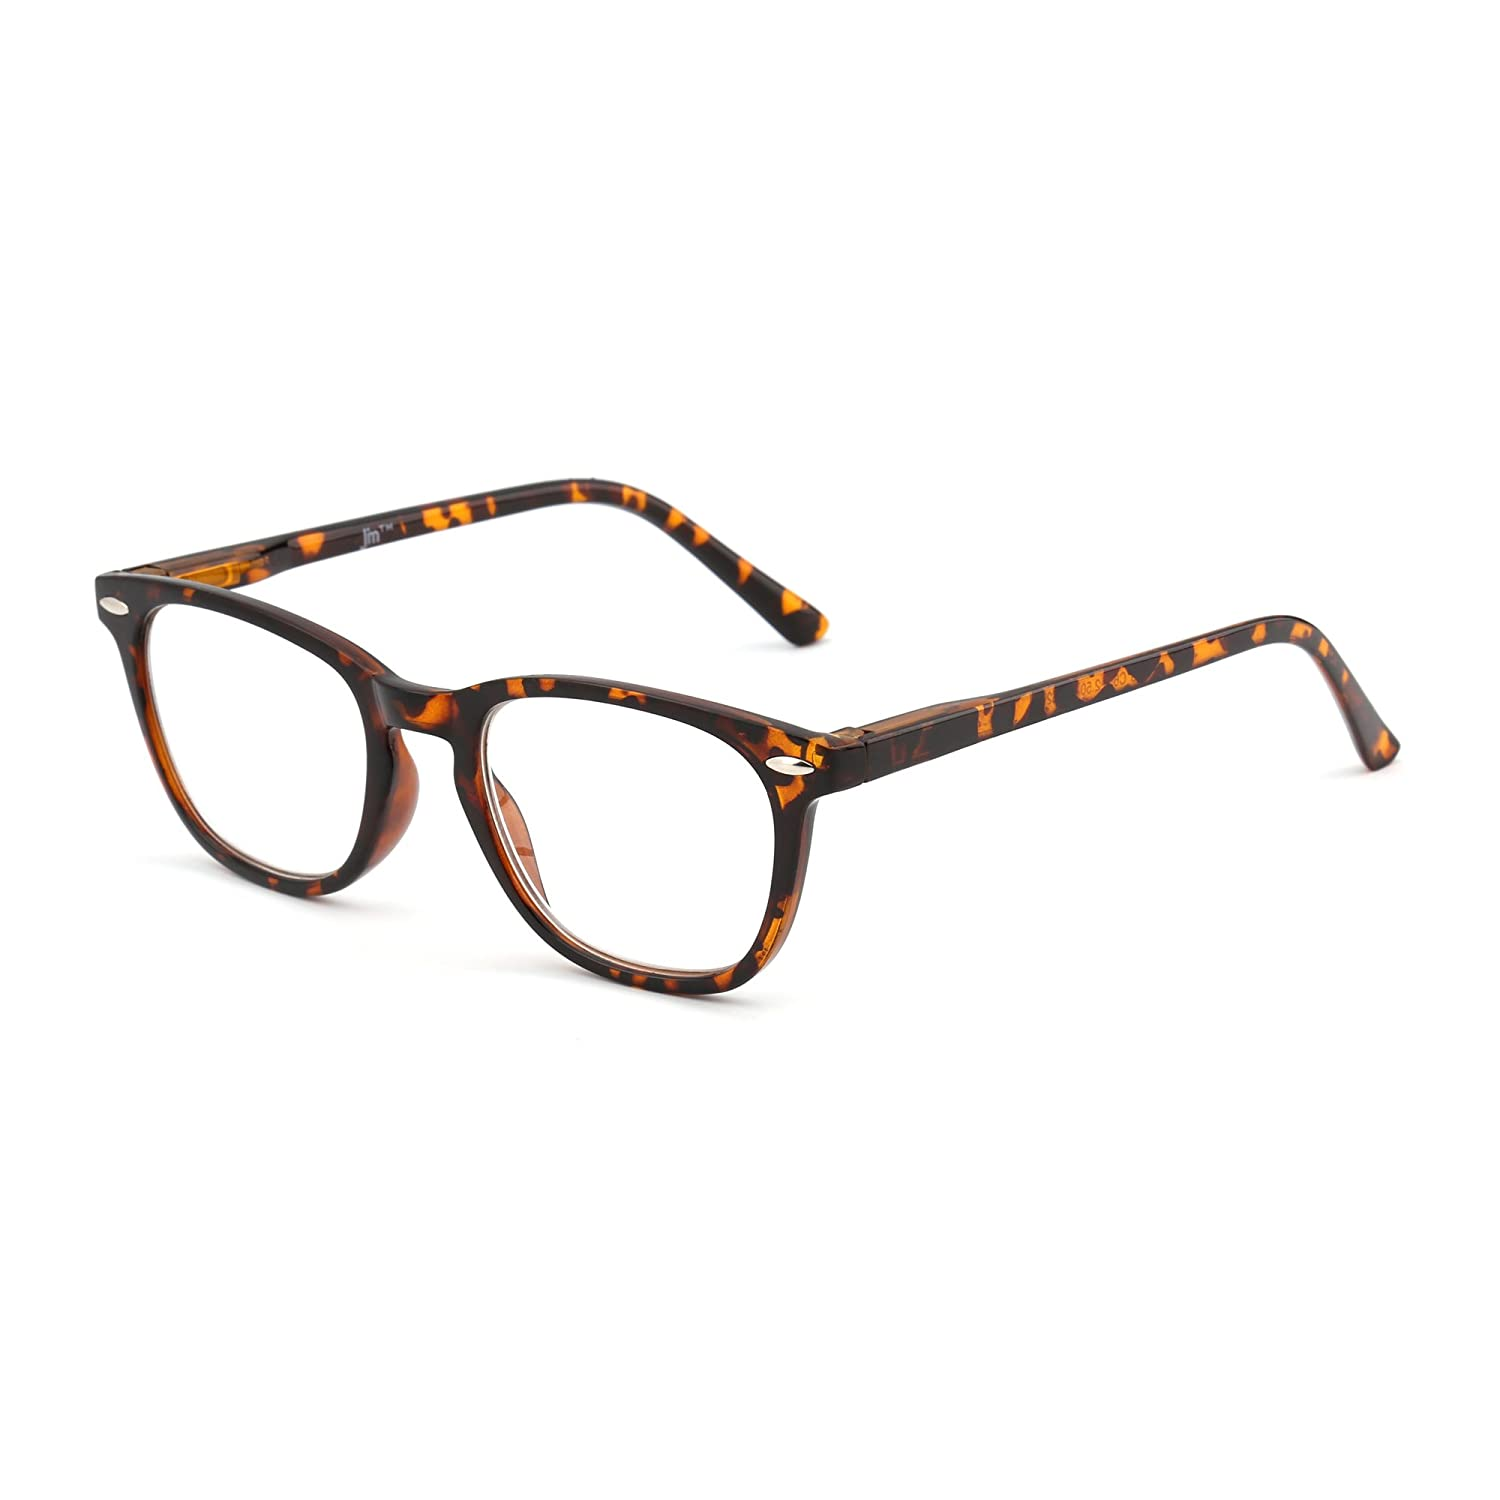 59396843910 Amazon.com  Retro Reading Glasses Spring Hinge Tortoiseshell Eyeglasses  Readers Men Women Eyewear for Reading +2.25  Health   Personal Care